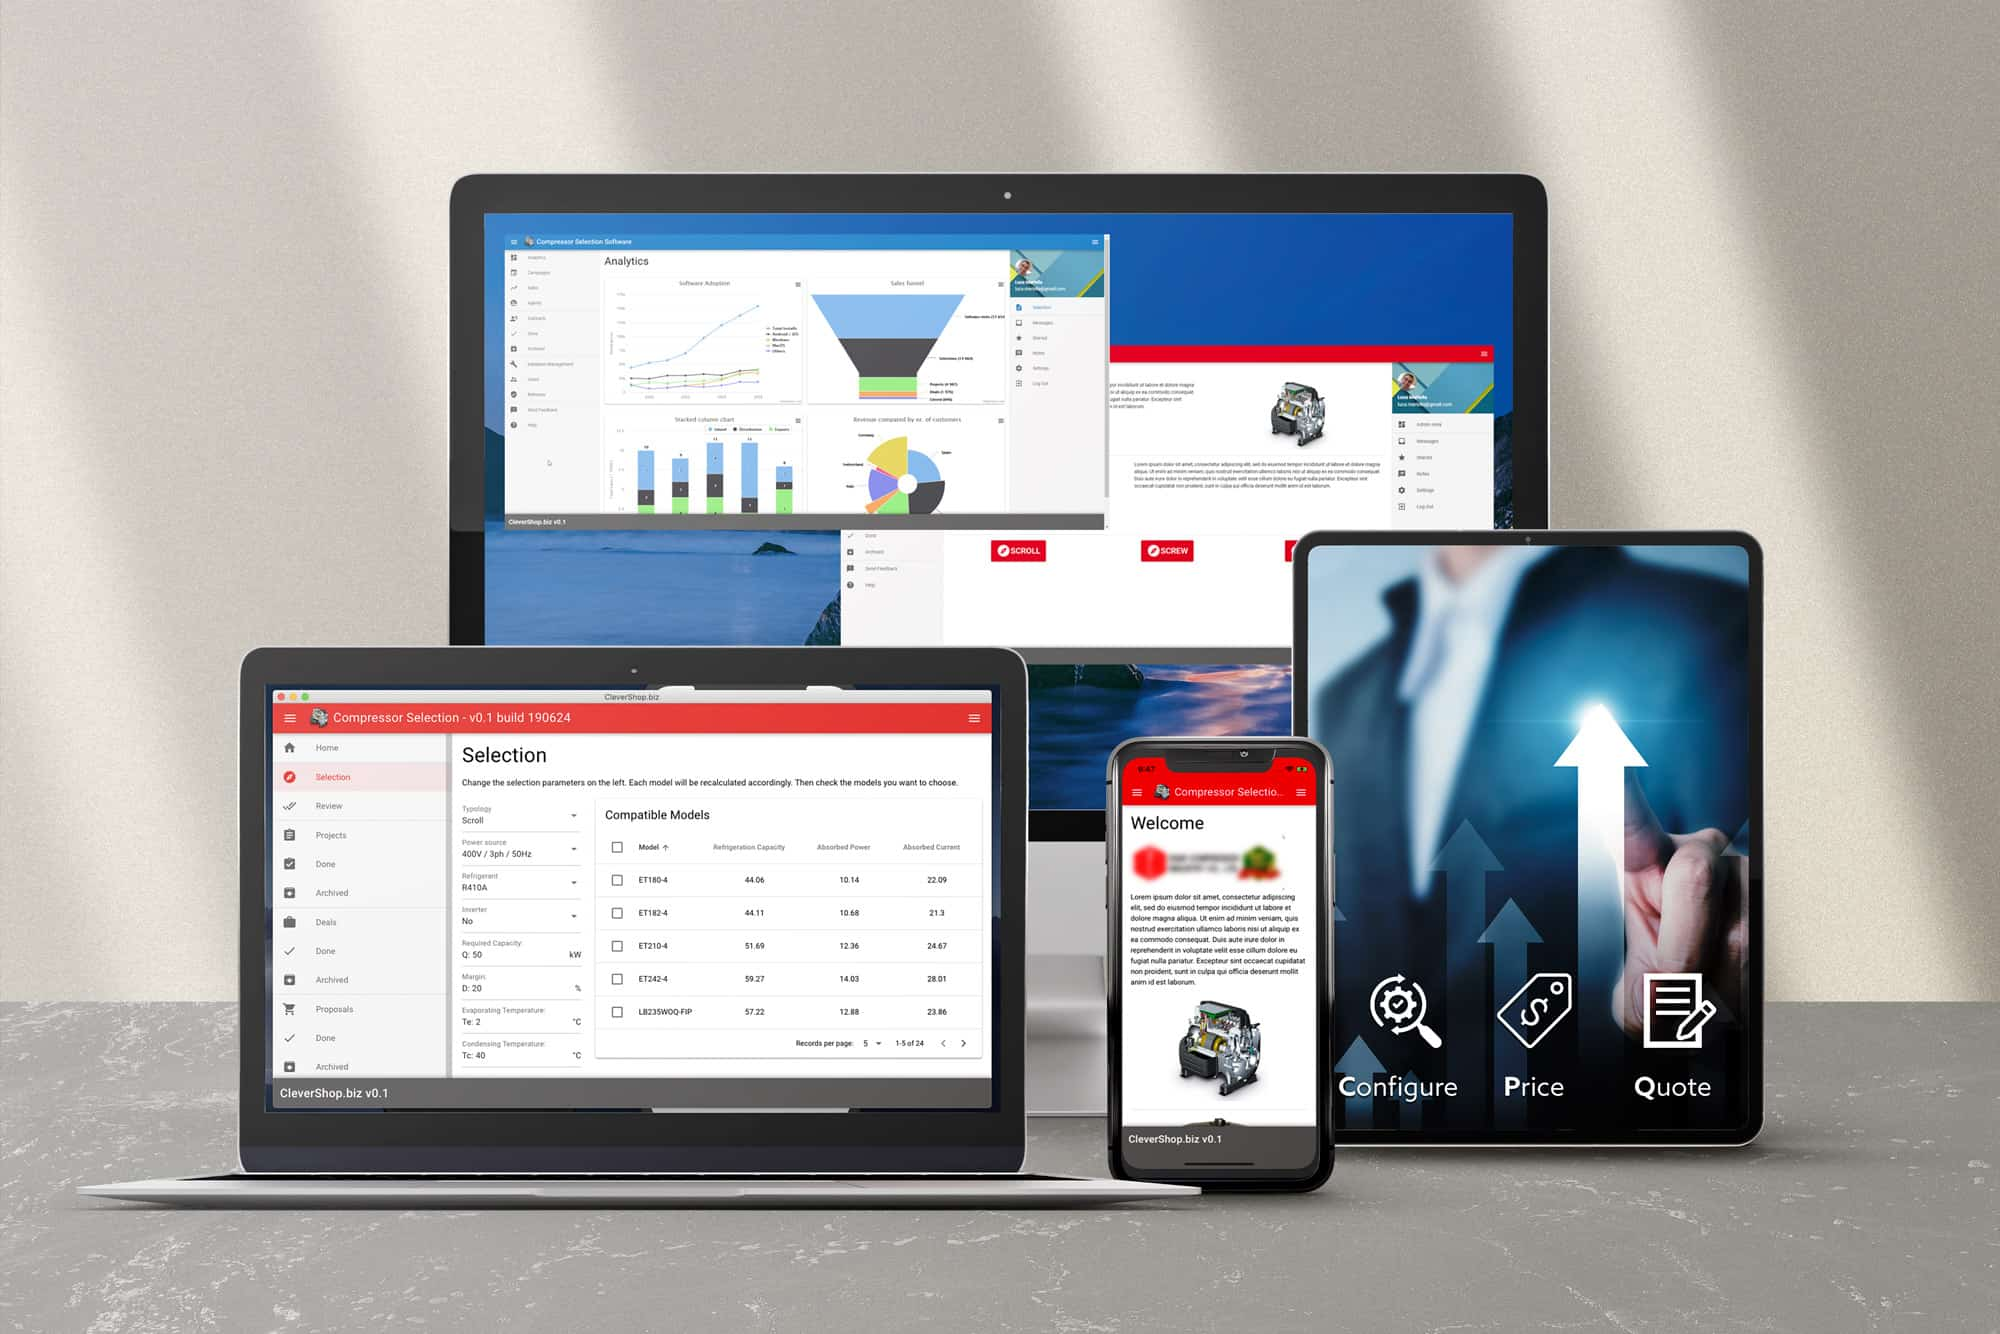 Tailor-made CPQ - Web, Android, and iOS Product Selector/Configurator App